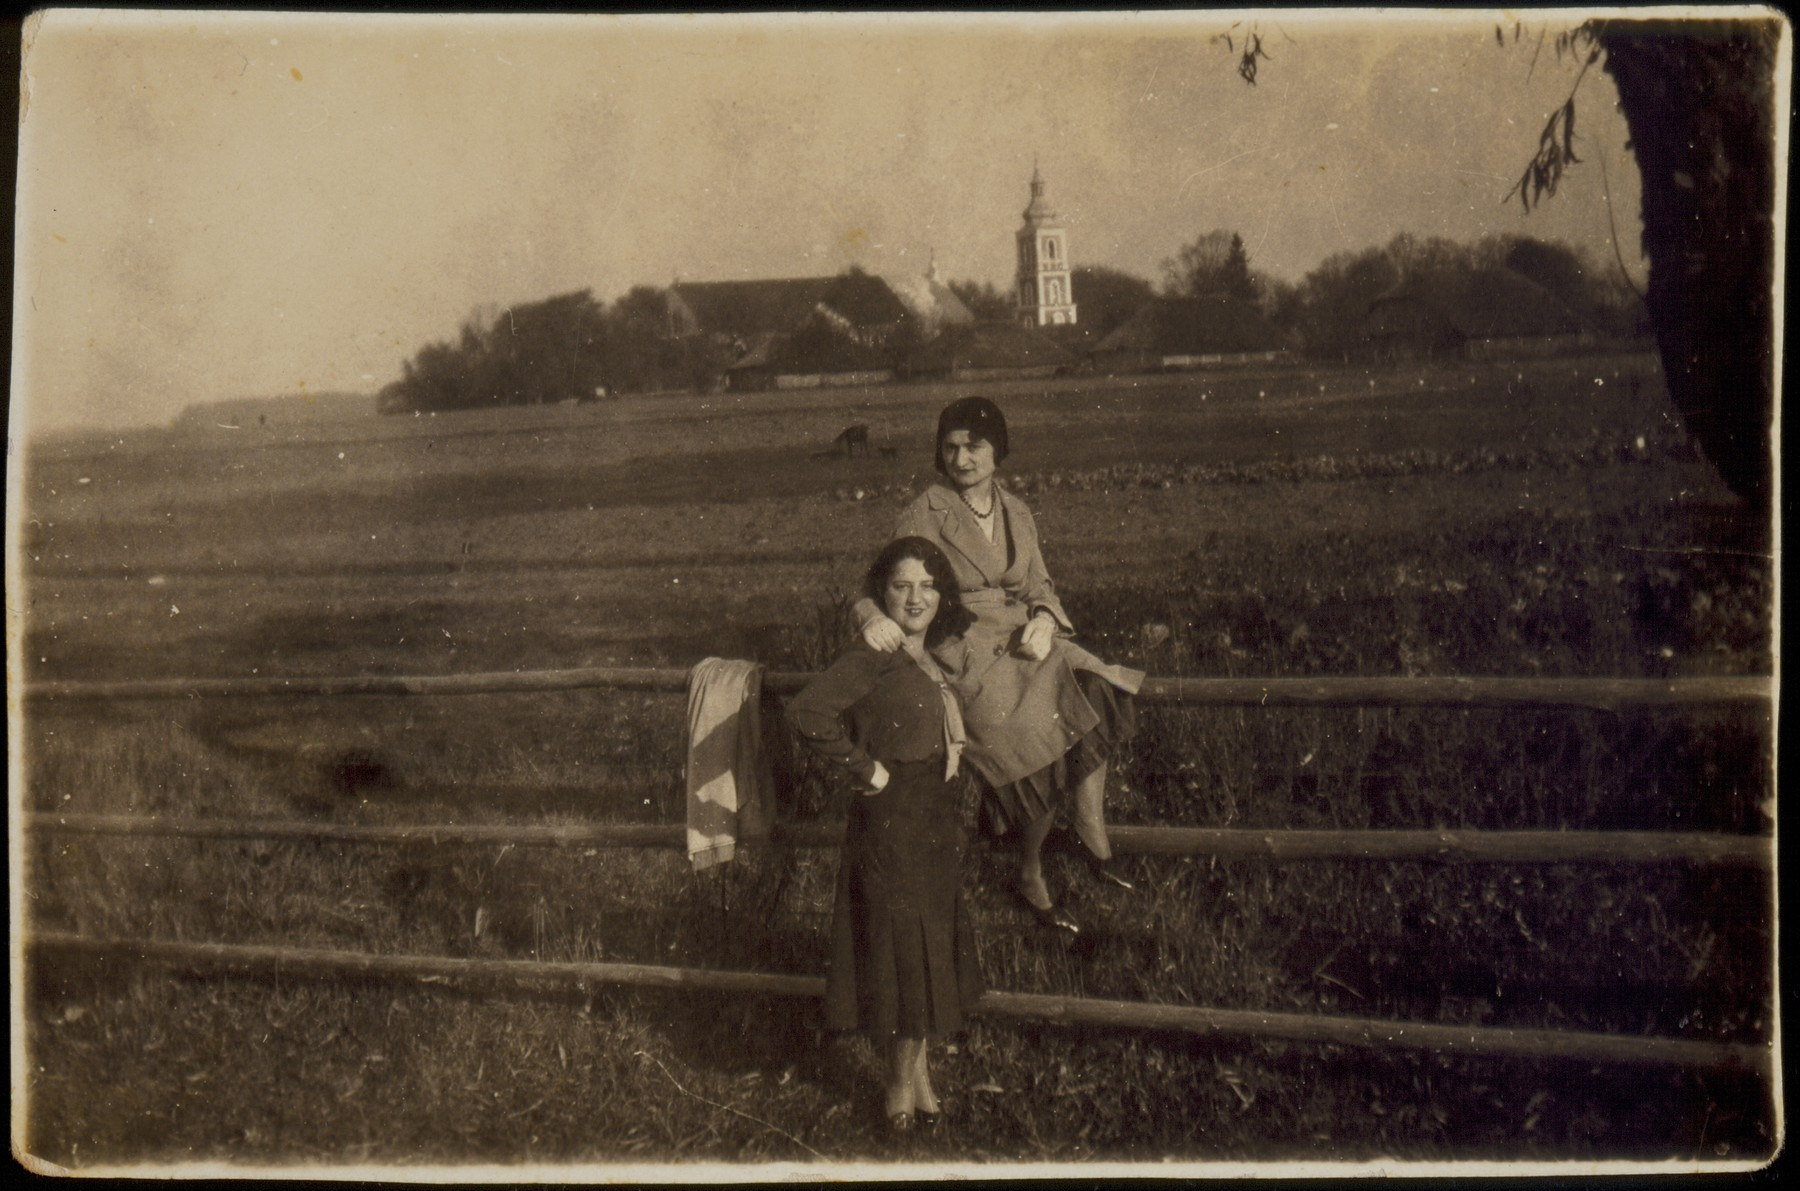 Two young women pose by a fence surrounding a Jewish-owned pasture.   Geneshe Kaganowicz is sitting, and Matle Sonenson is standing next to her.  The two best friends later became sisters-in-law after Geneshe married Matle's brother Leibke.  In the background is the Catholic church at Juryzdyki.